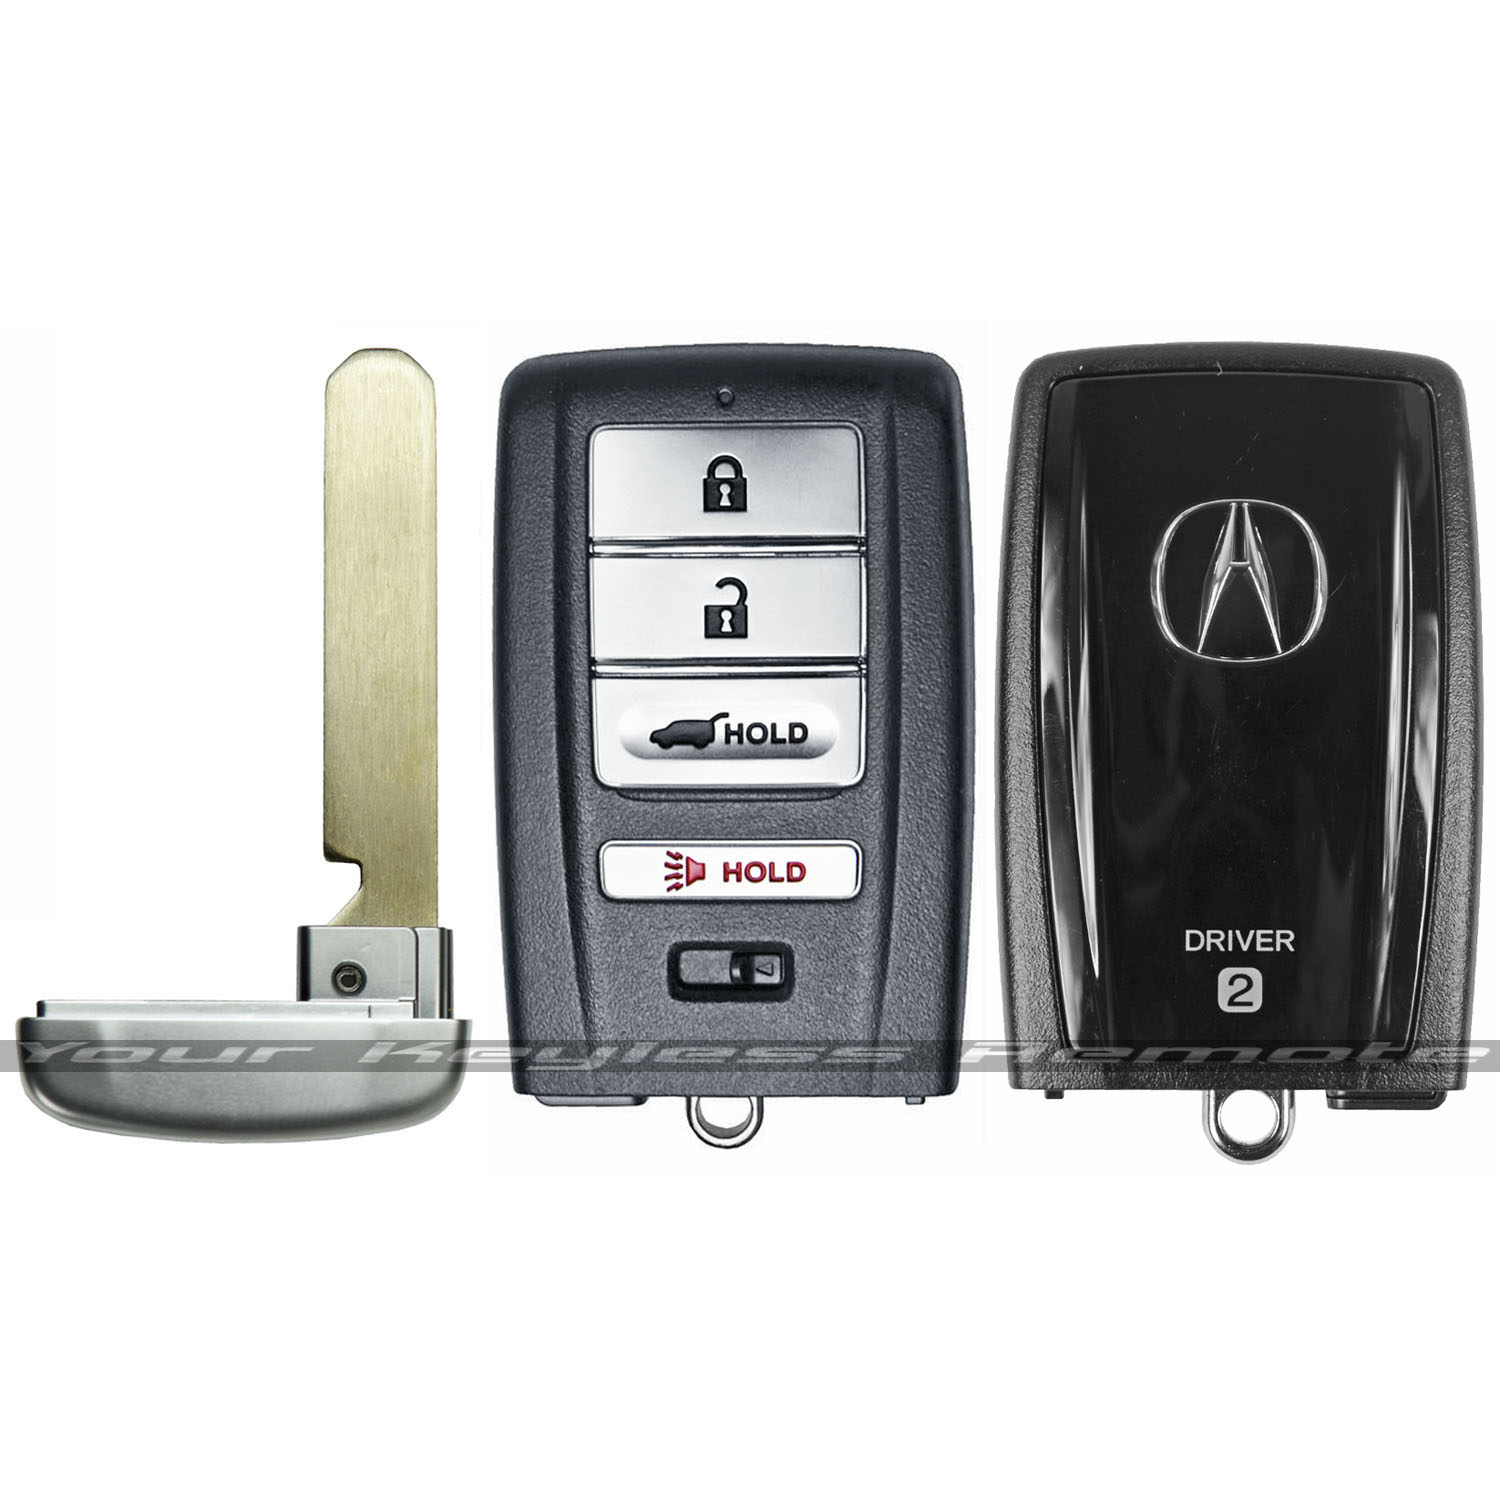 Acura Mdx Smart Key Remote Prox Keyless Fob Transmitter